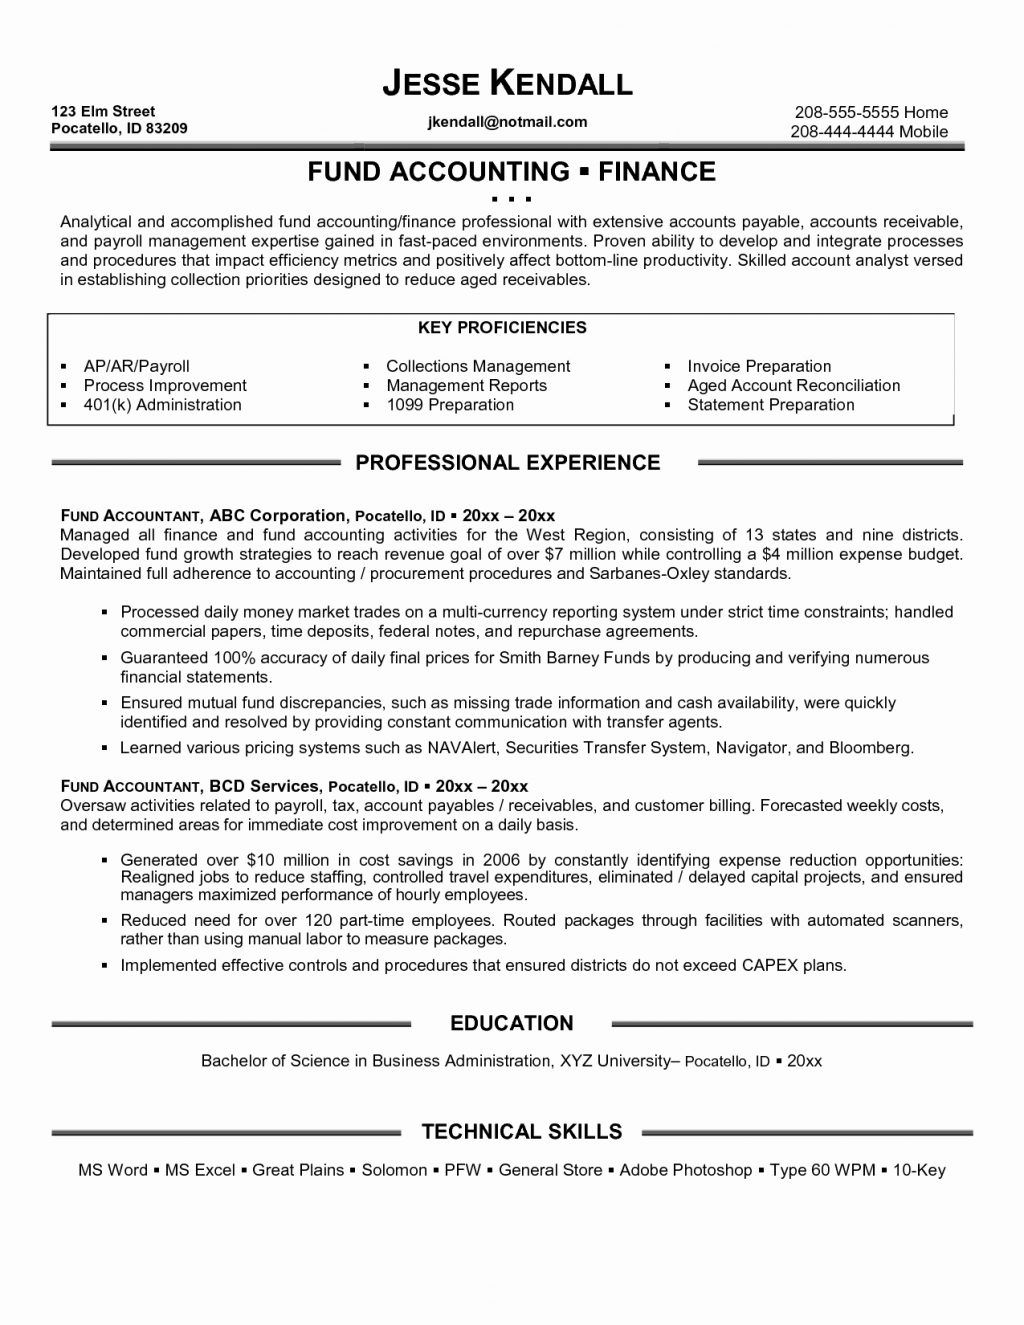 Accounts Payable And Receivable Resume New Staff Accountant Resume Summary Best Staff Accountant Resume Exle .